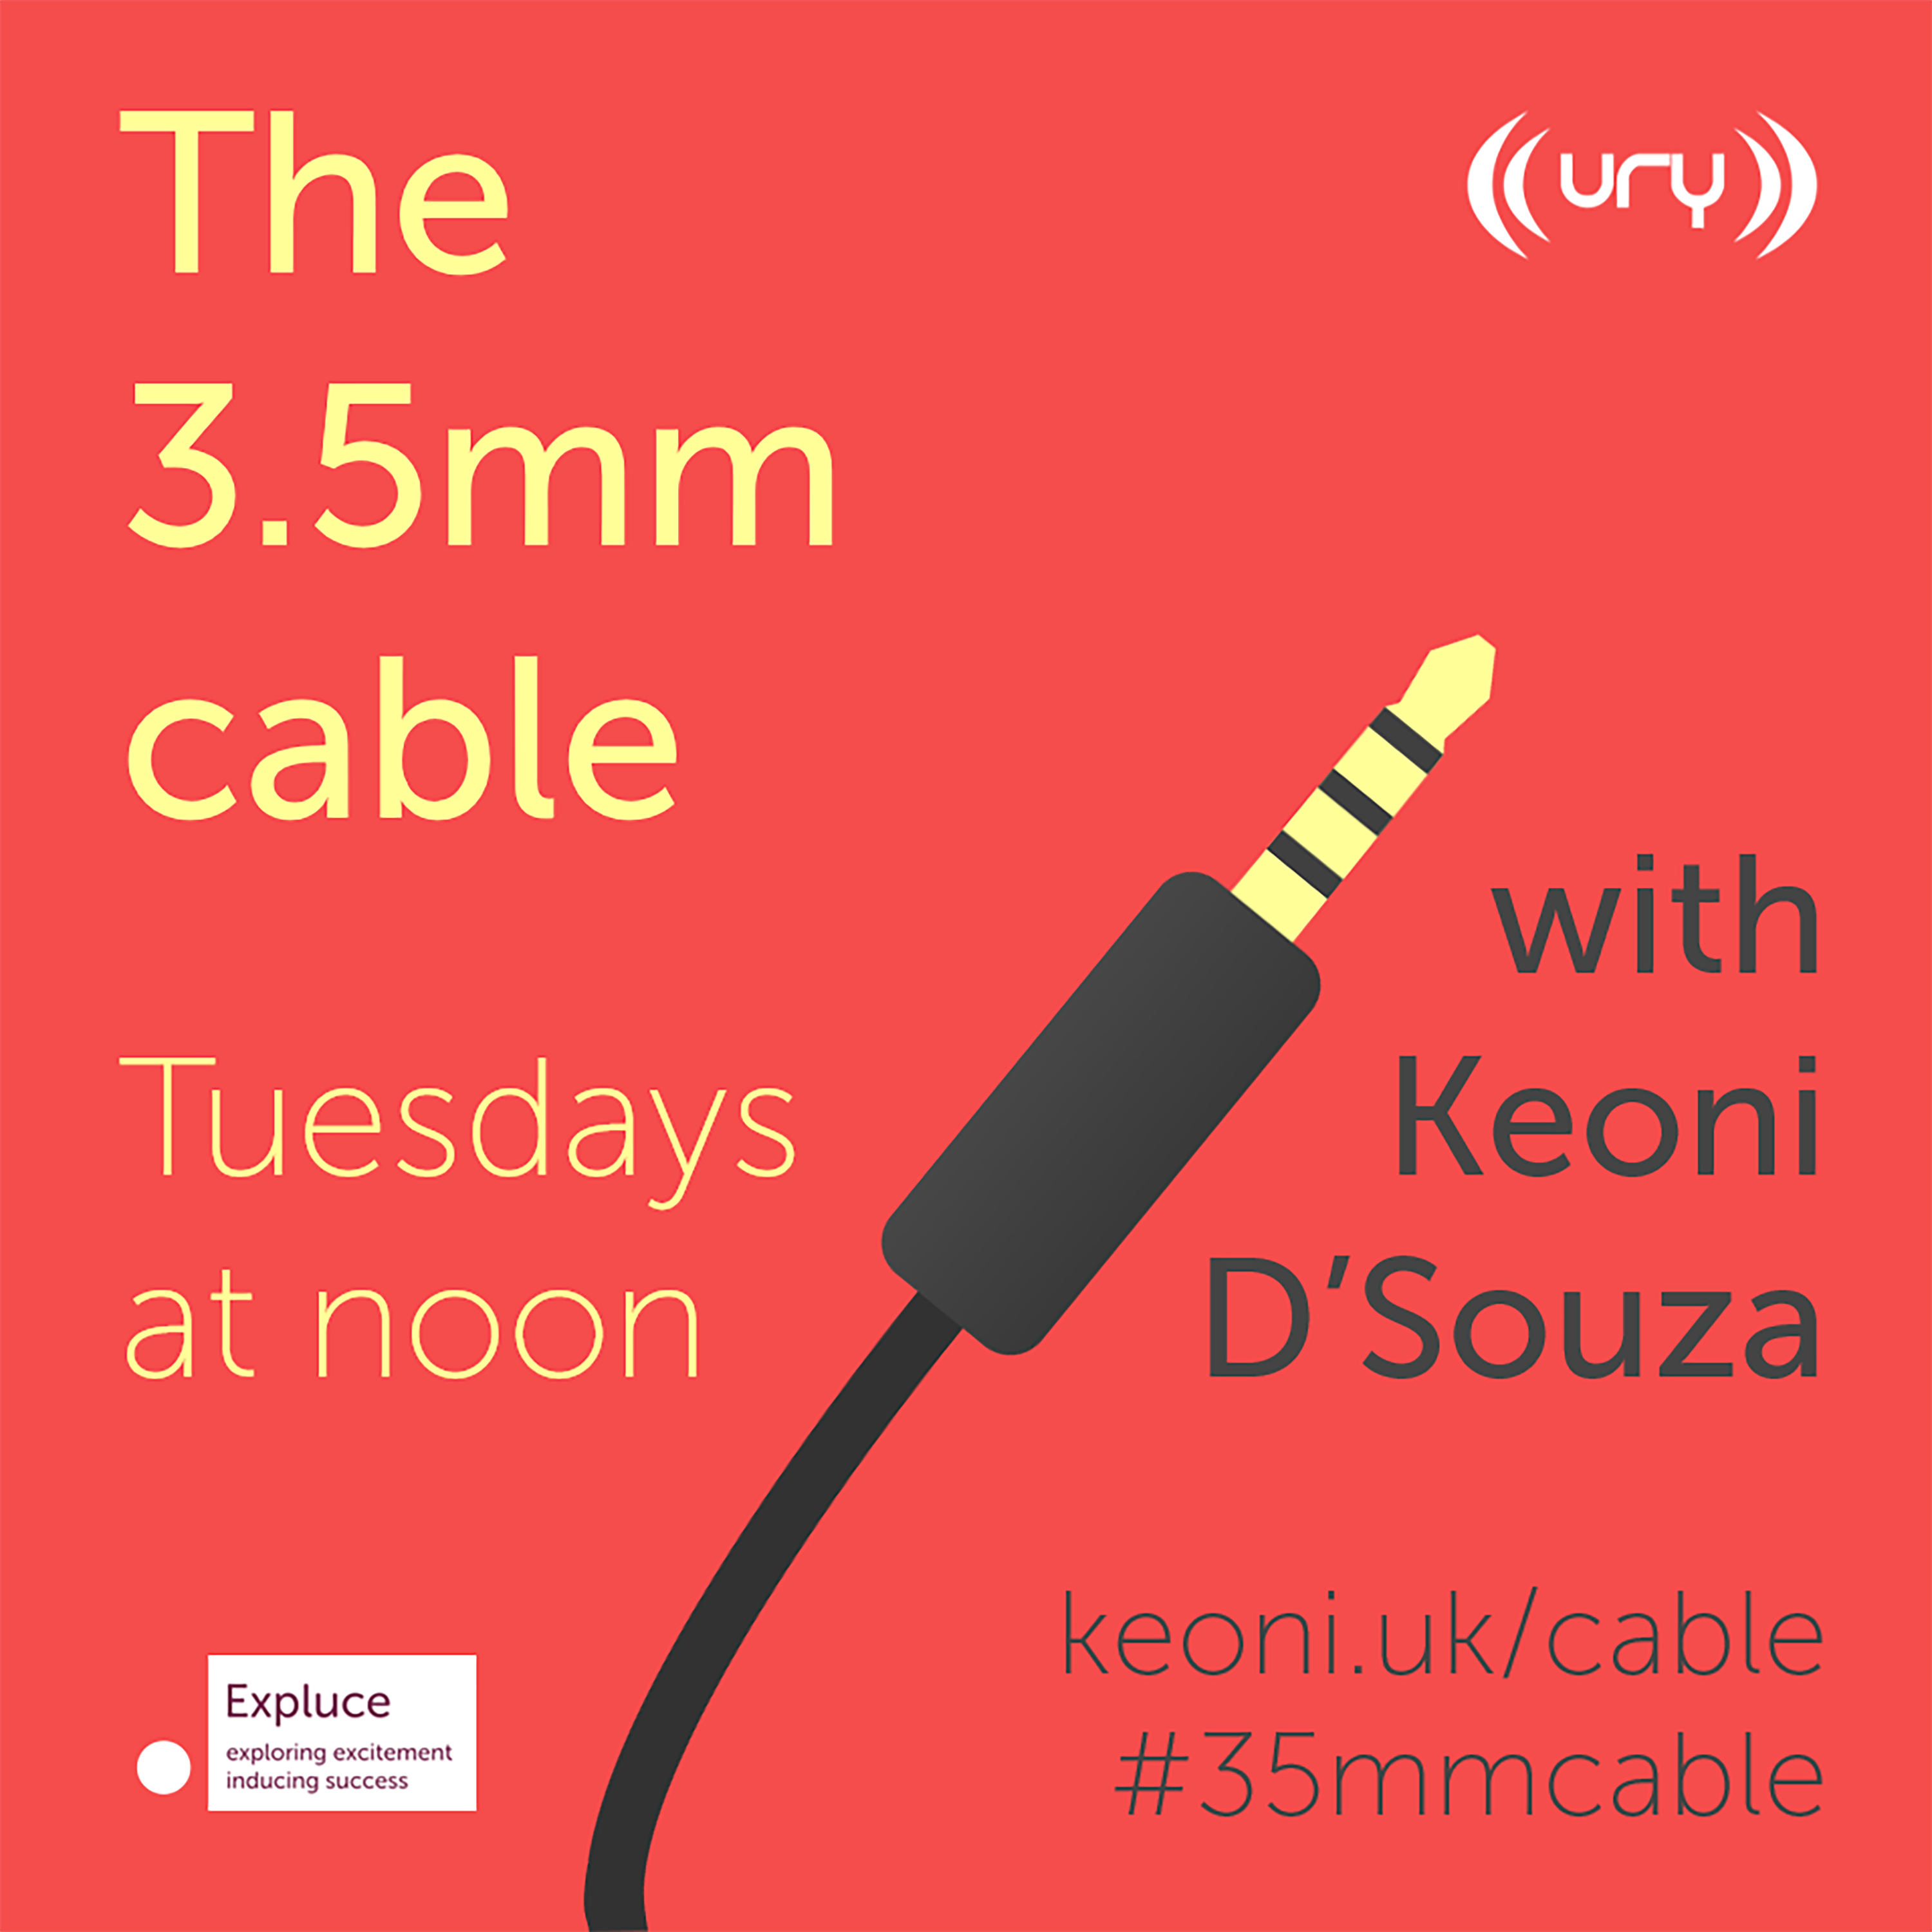 The 3.5mm cable logo.